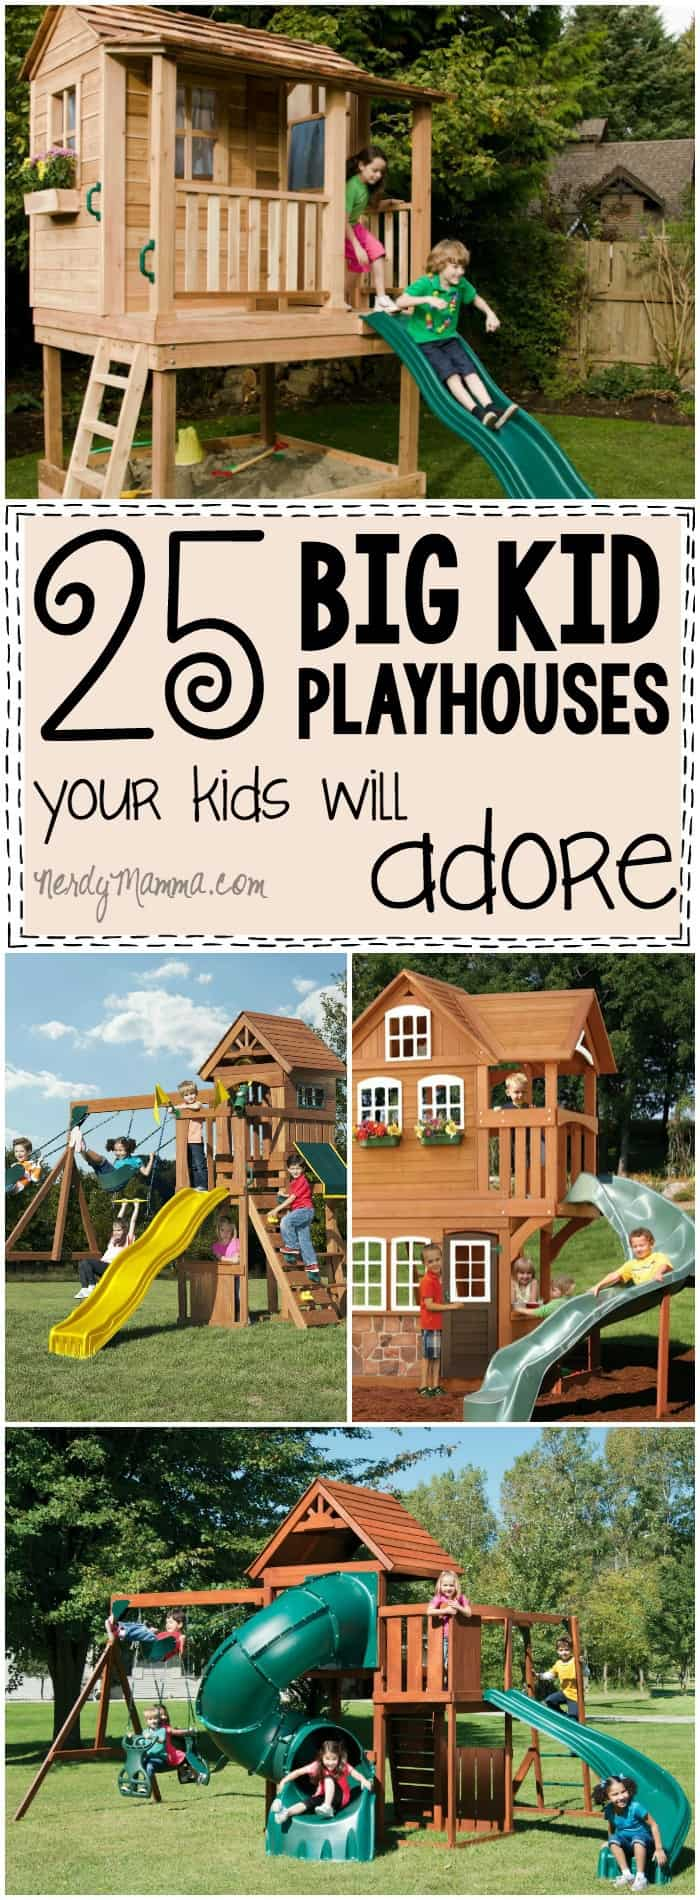 I love these playhouses for big kids--so many great ideas and all EXACTLY what I want the kids to play on!